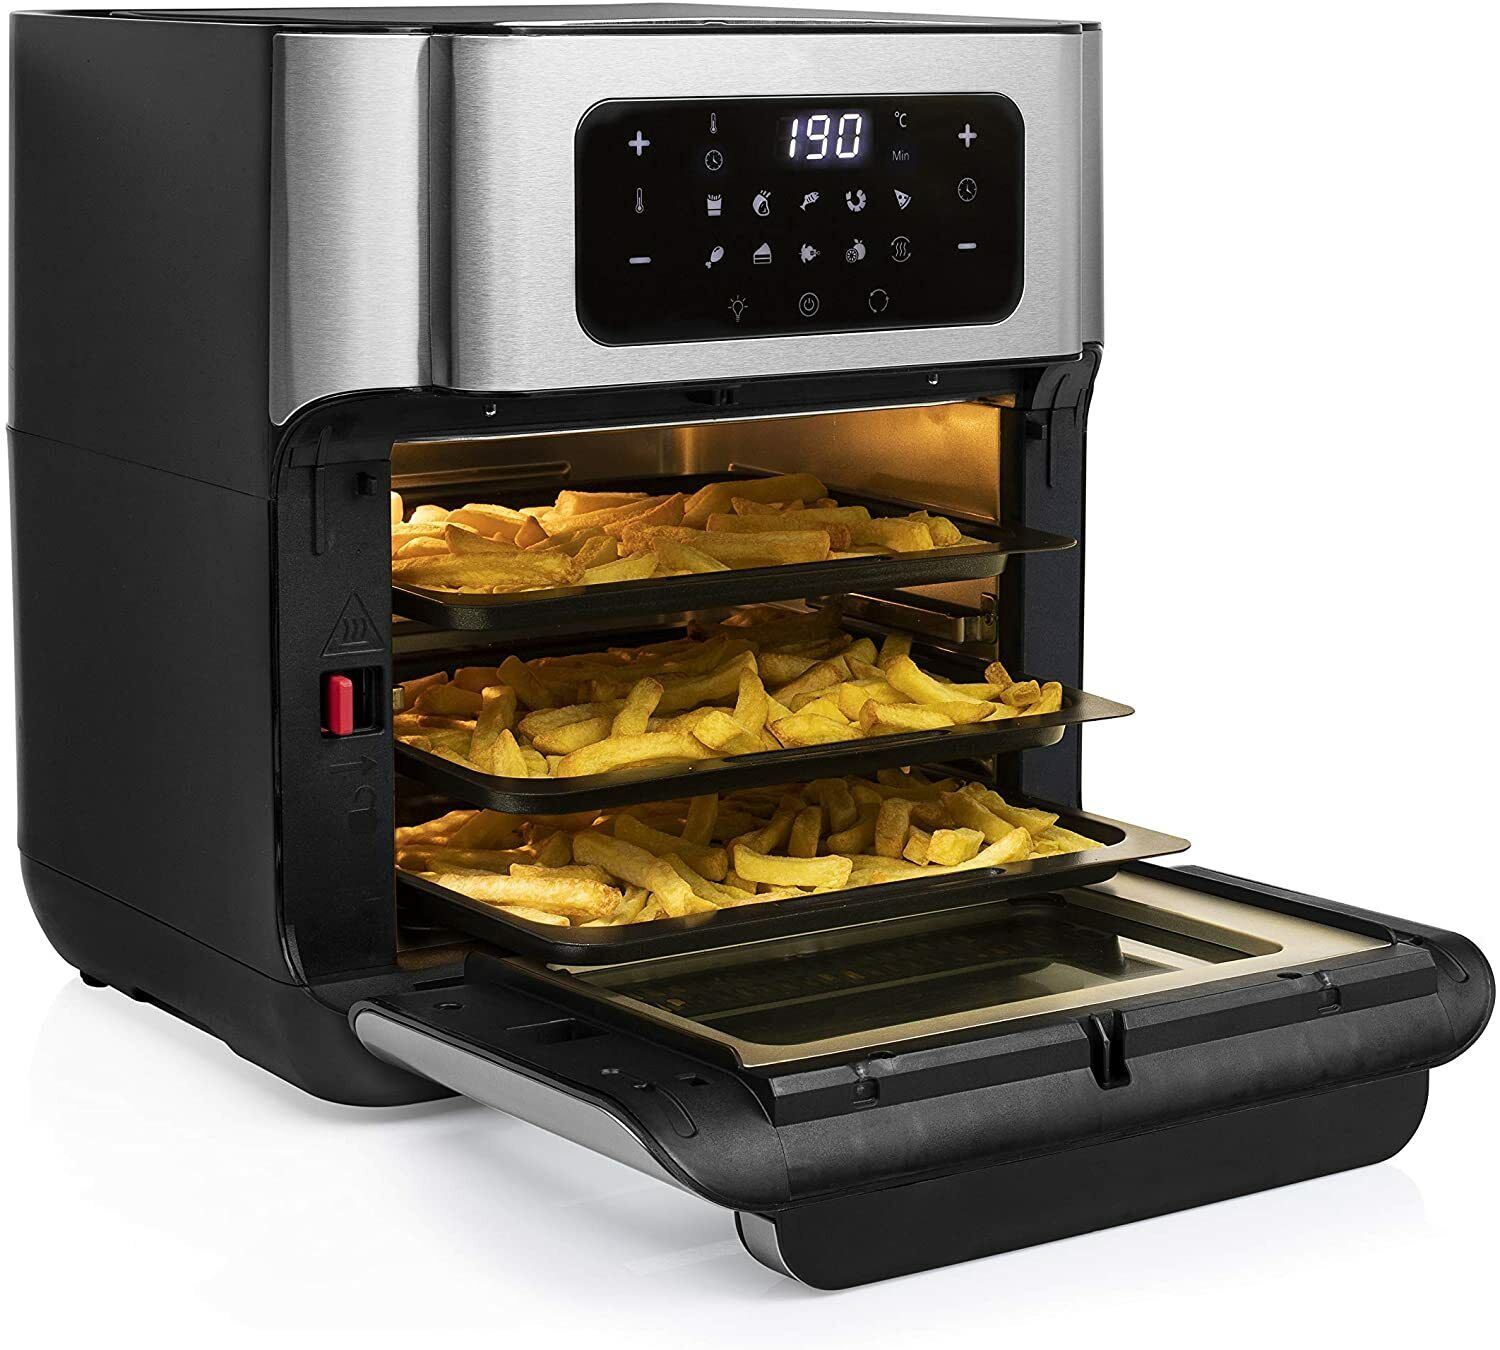 Princess 182065 Aerofryer Oven And Frier Of Air 338.1oz 1500 W 10 Programmes